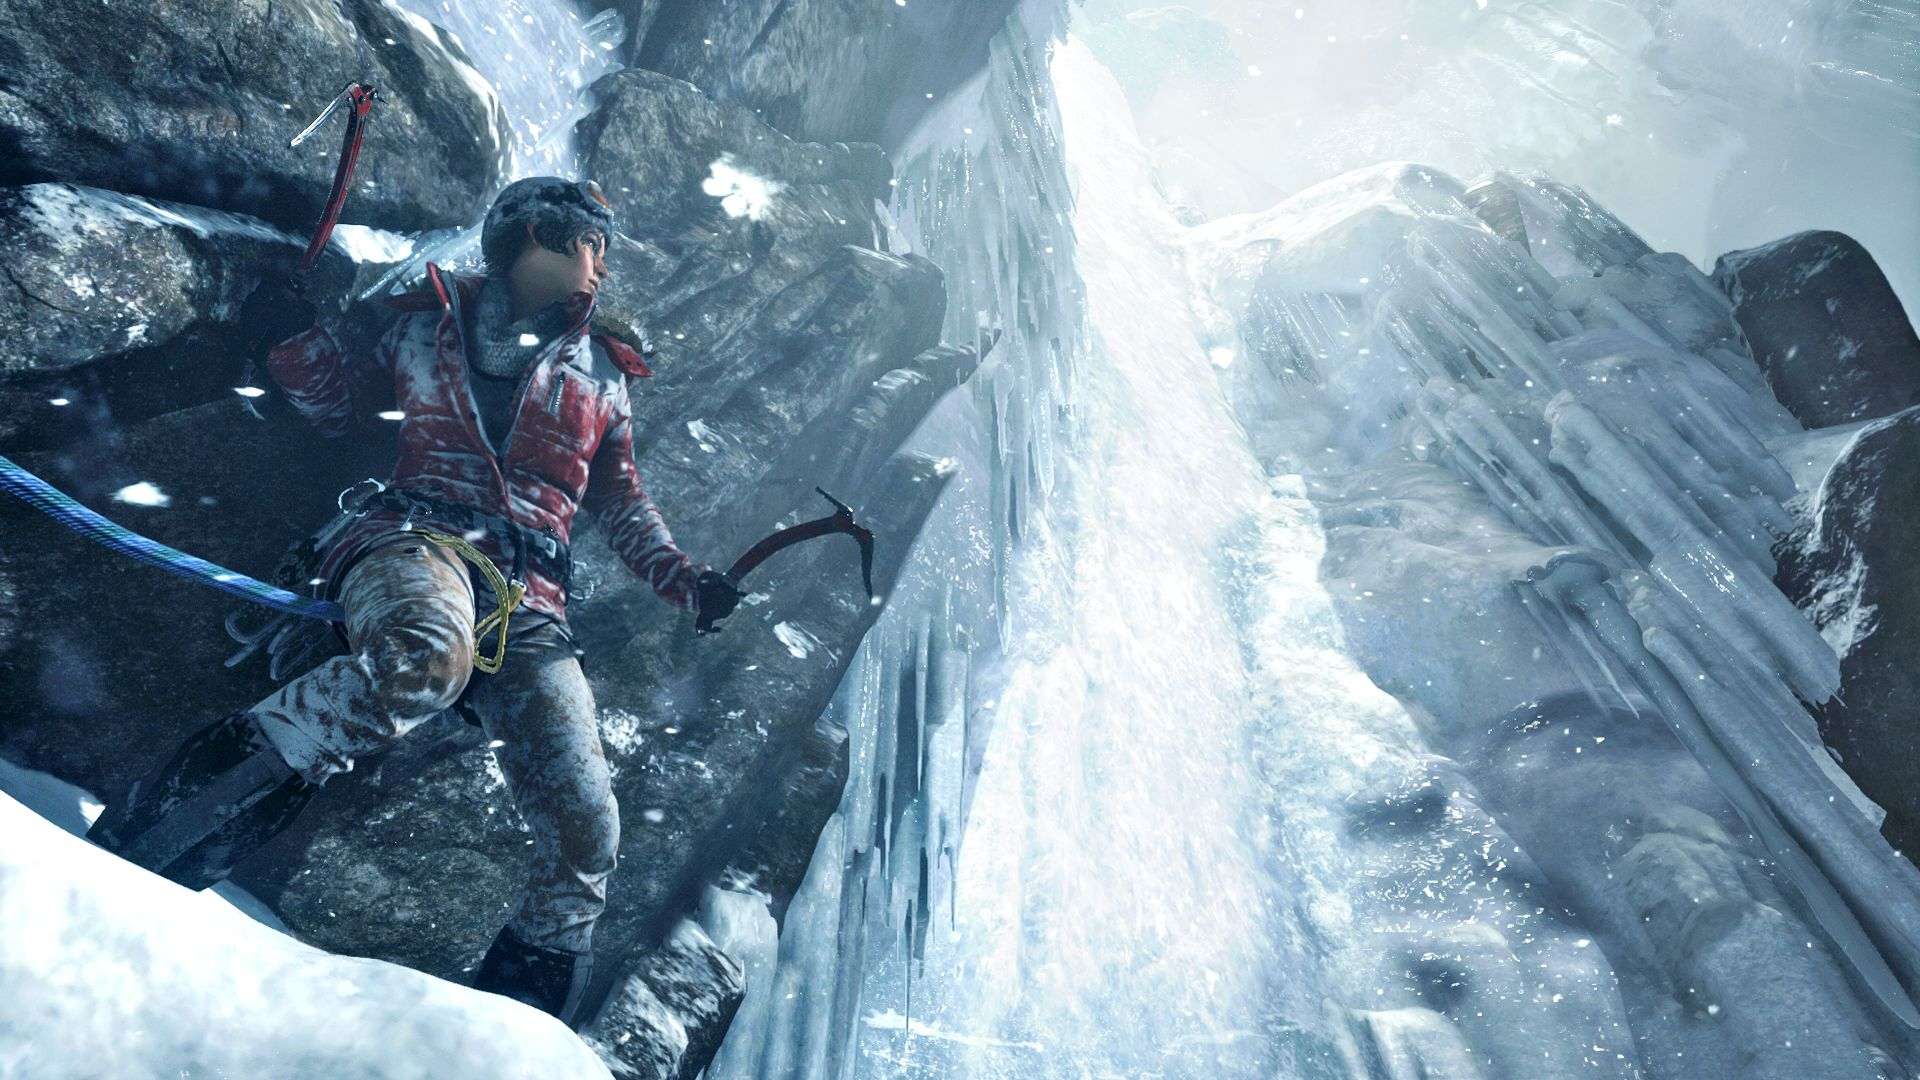 Rise Of The Tomb Raider PS4 Box Art Looks Very Familiar 2809263 1424111573 4 1